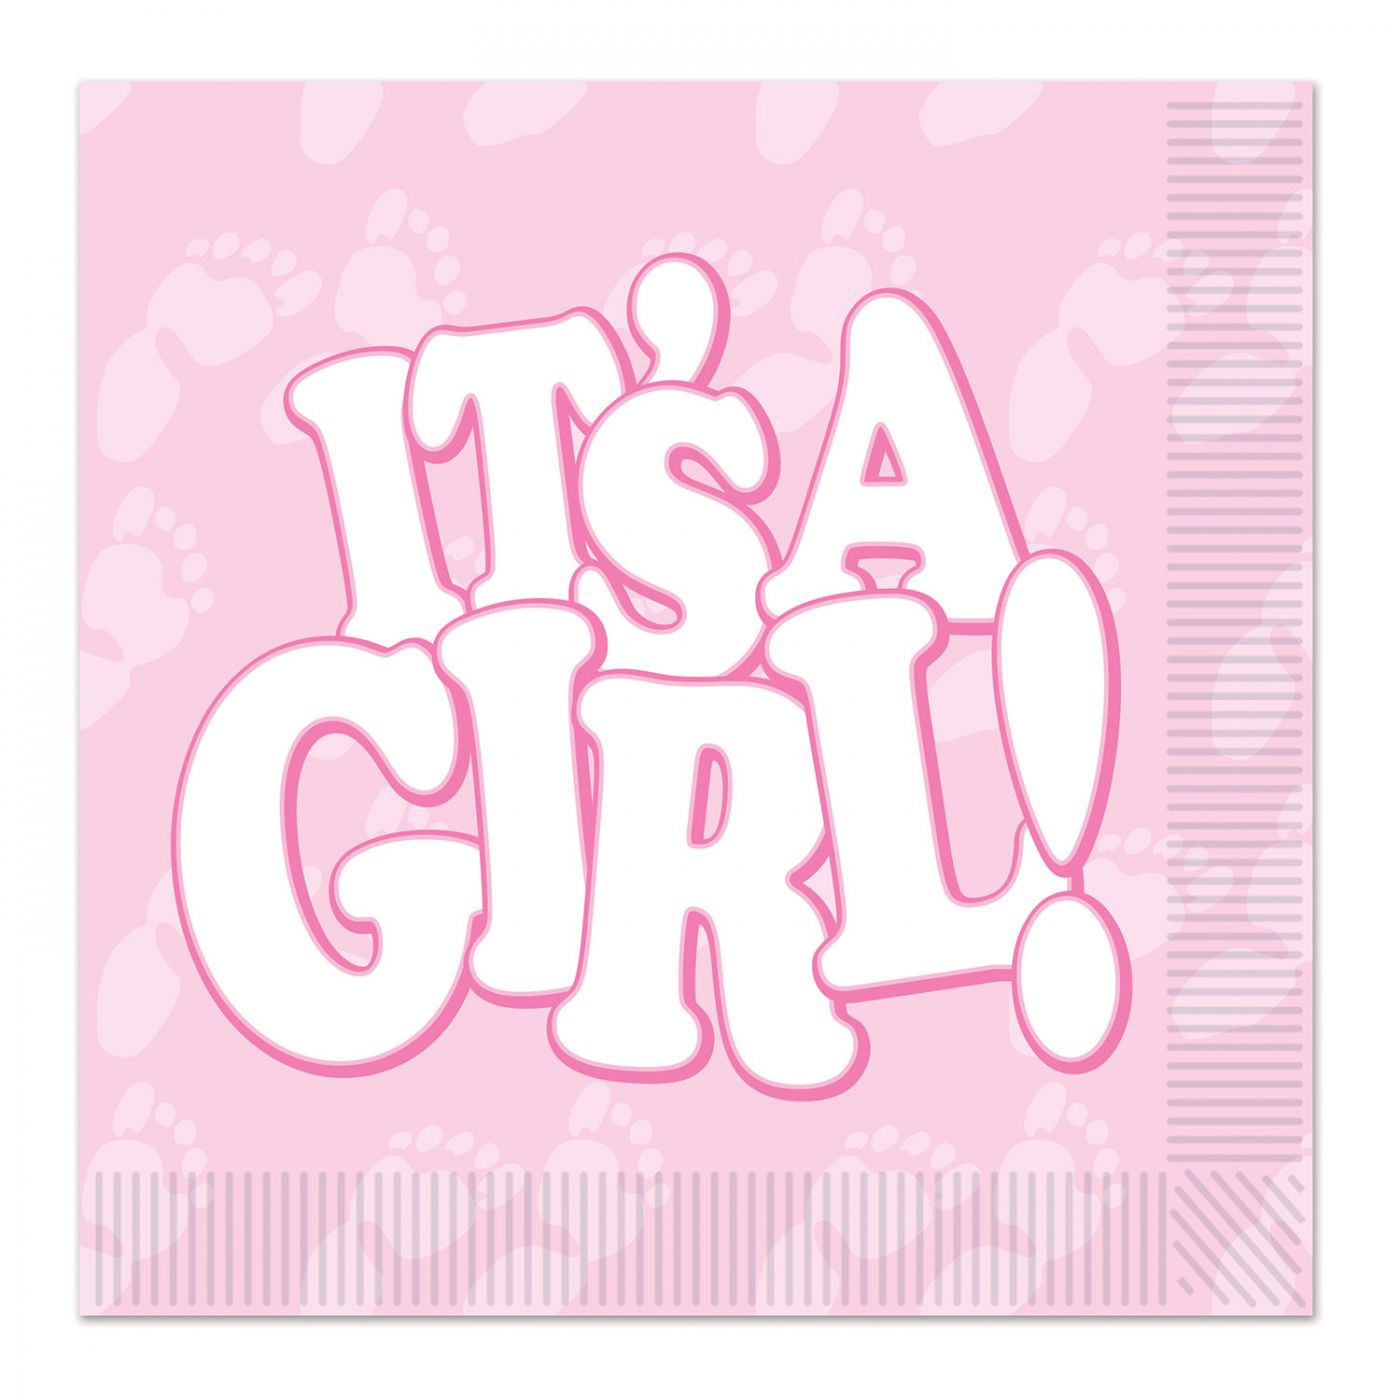 It's A Girl! Beverage Napkins image